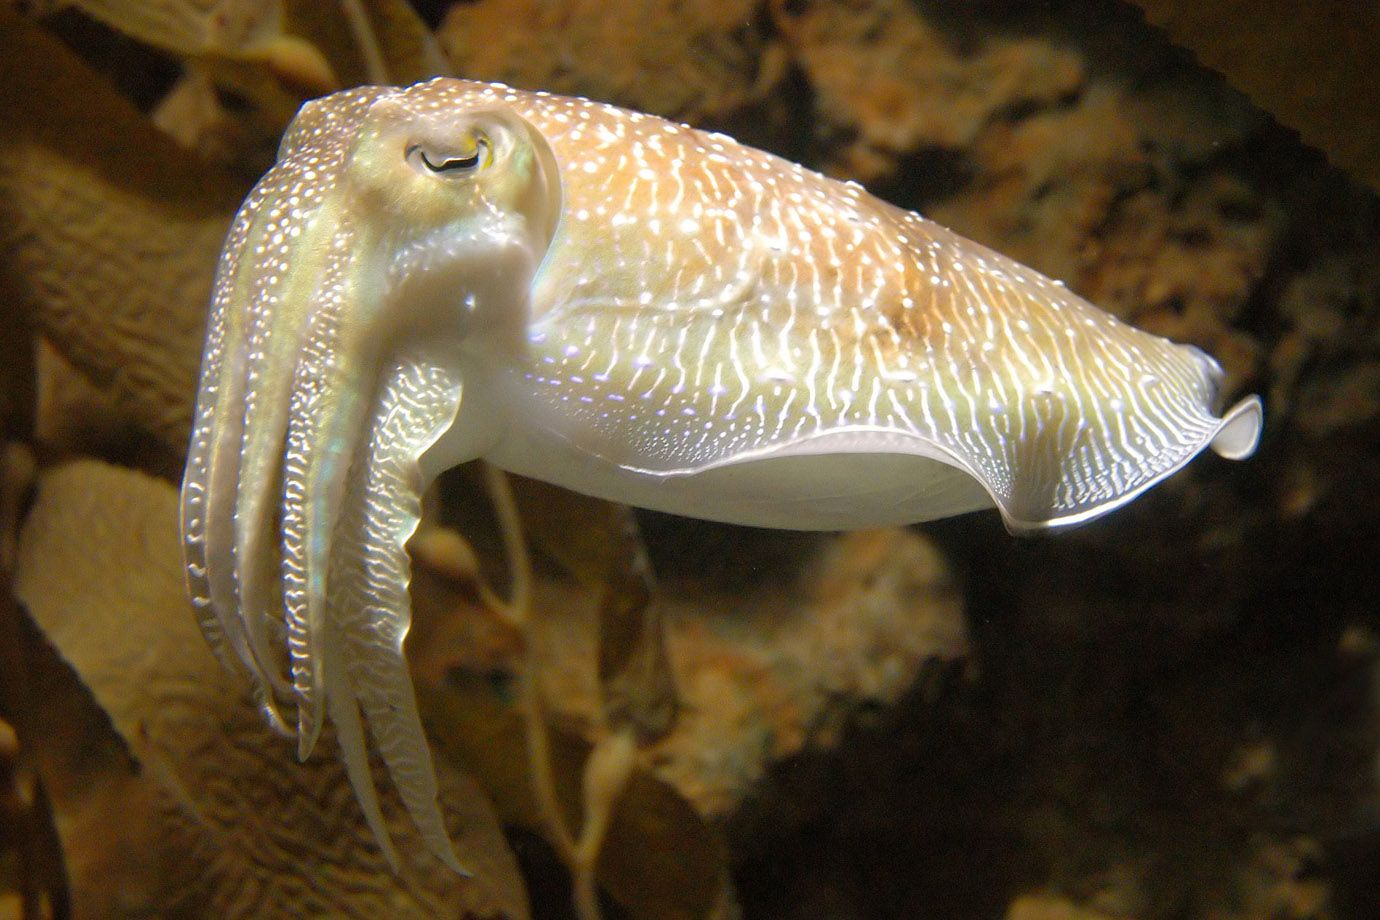 This Cuttlefish seems to doze